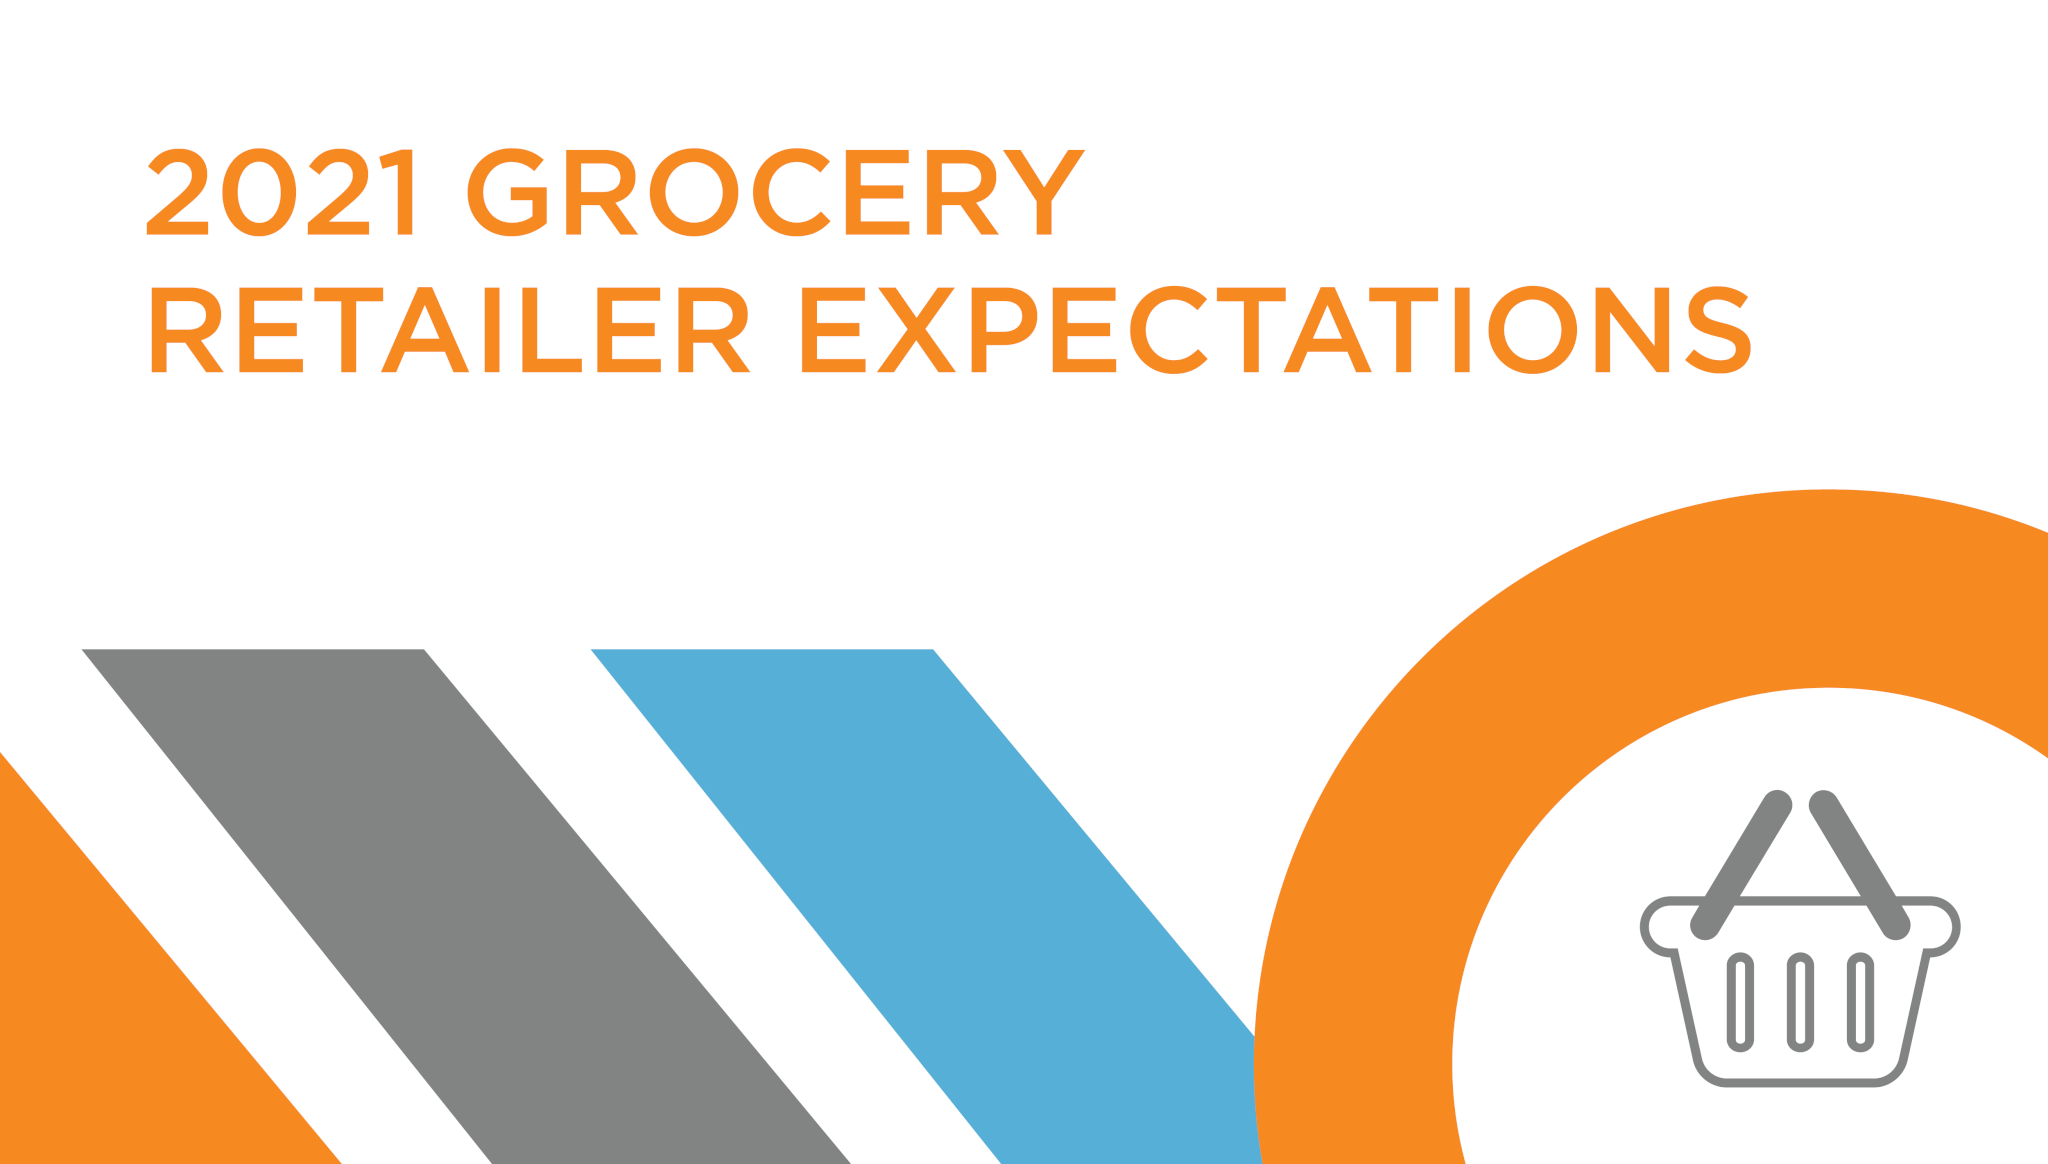 2021 Grocery Retailer Expectations